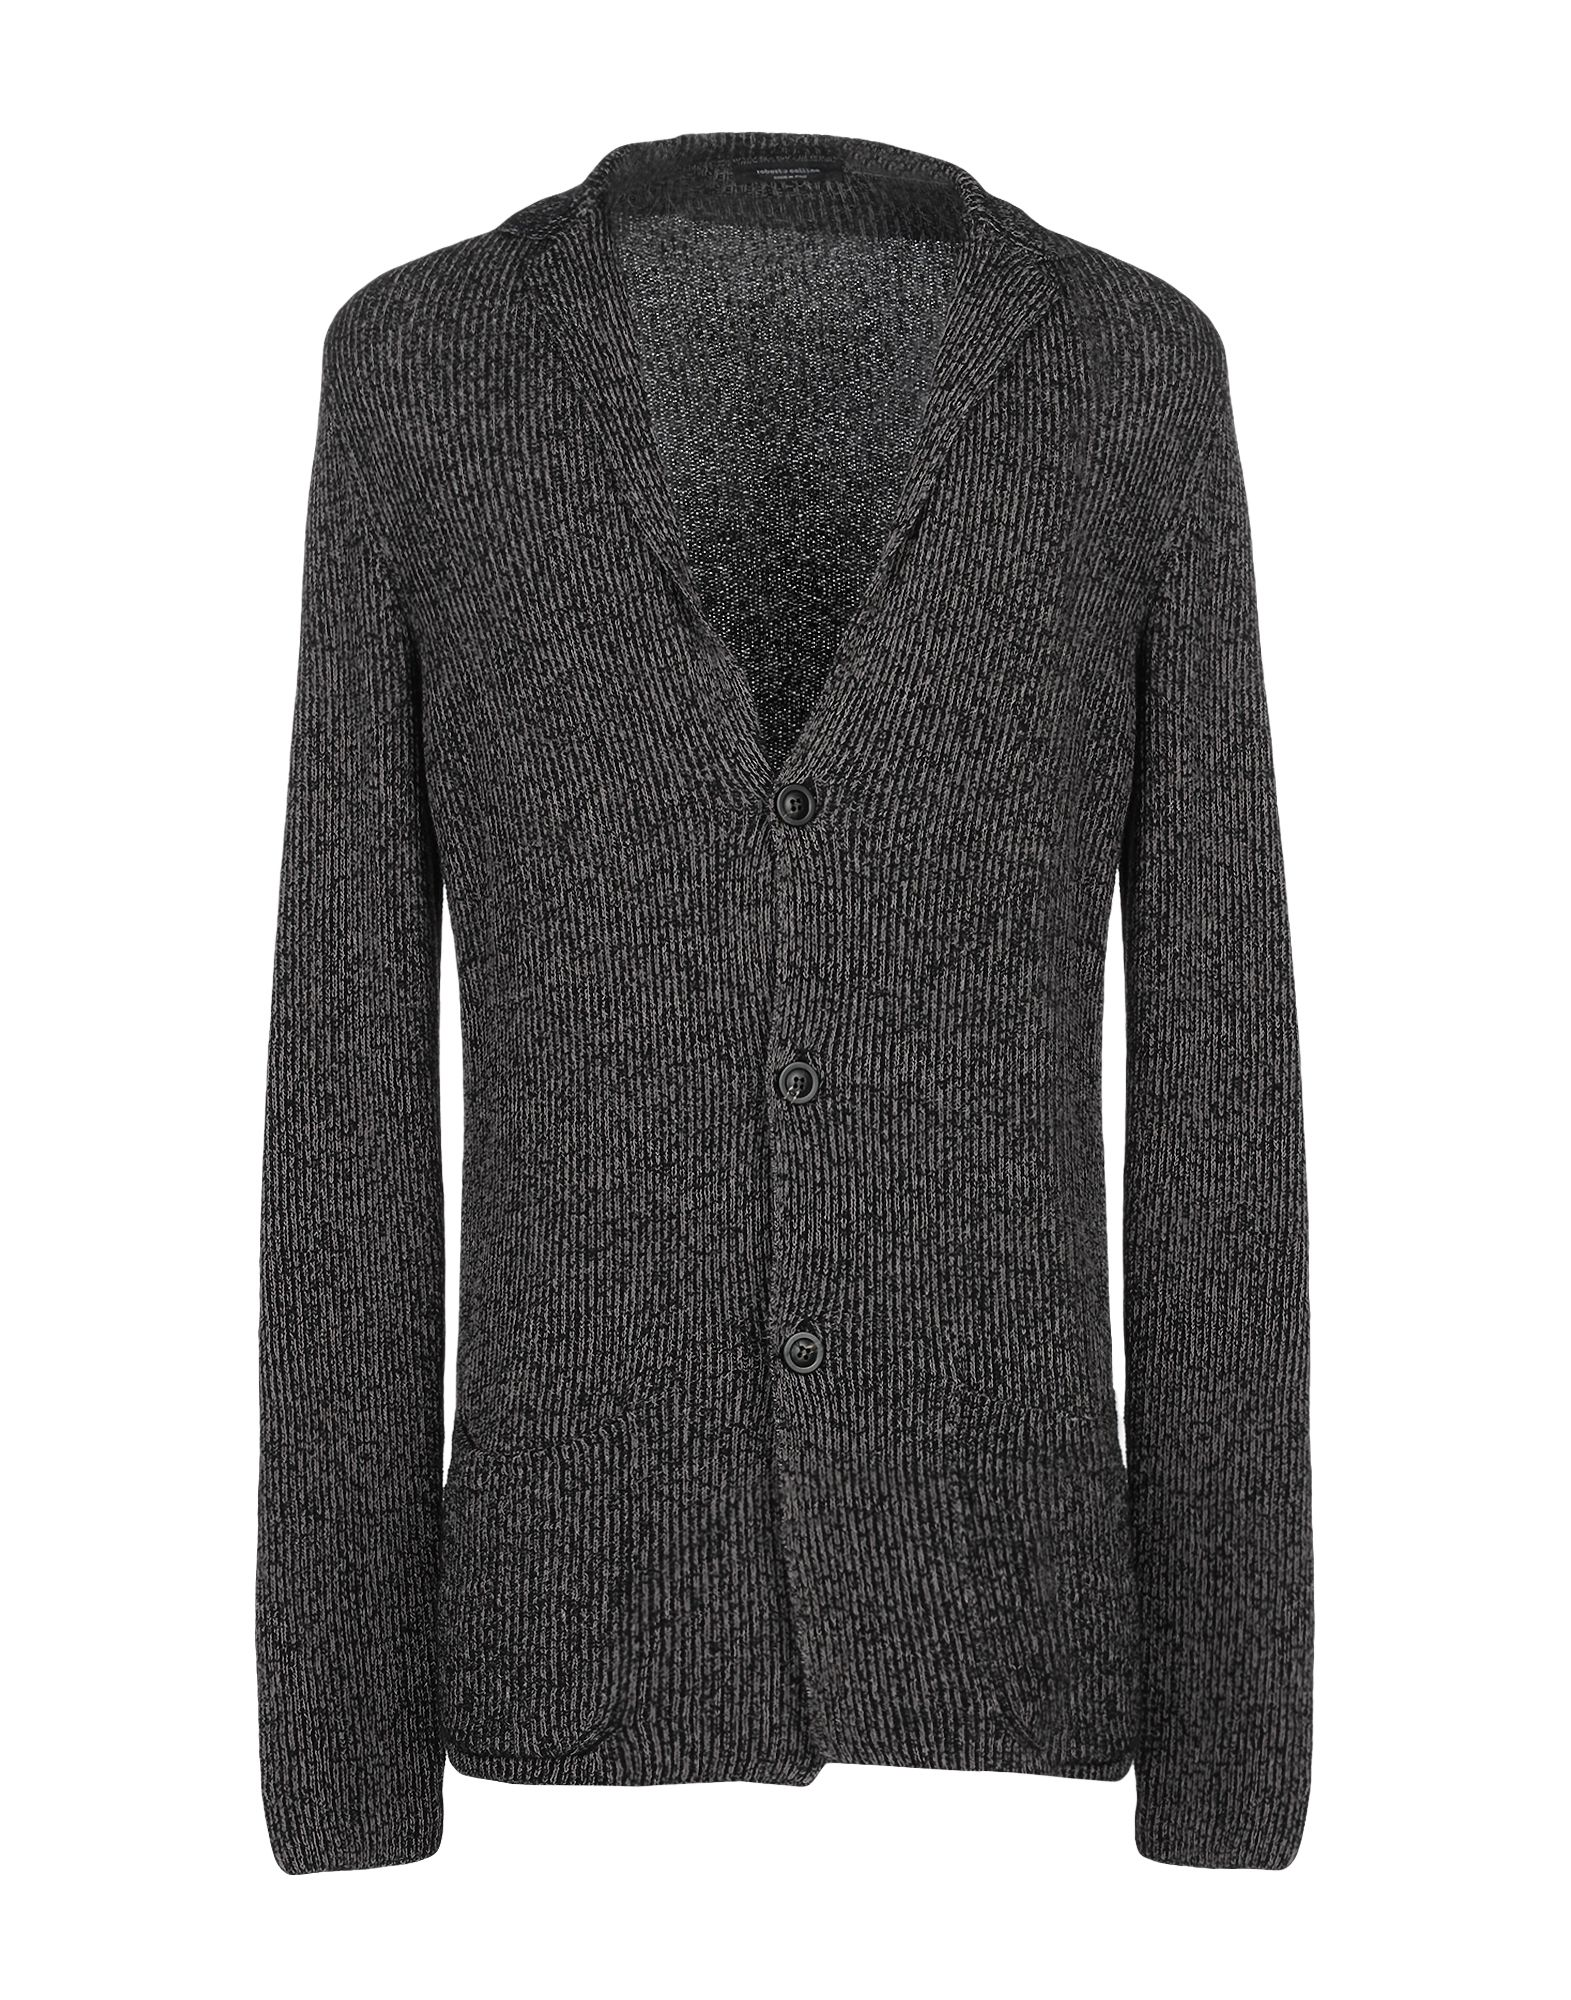 c231095eb564 Roberto Collina Blazer - Men Roberto Collina Blazers online on YOOX ...